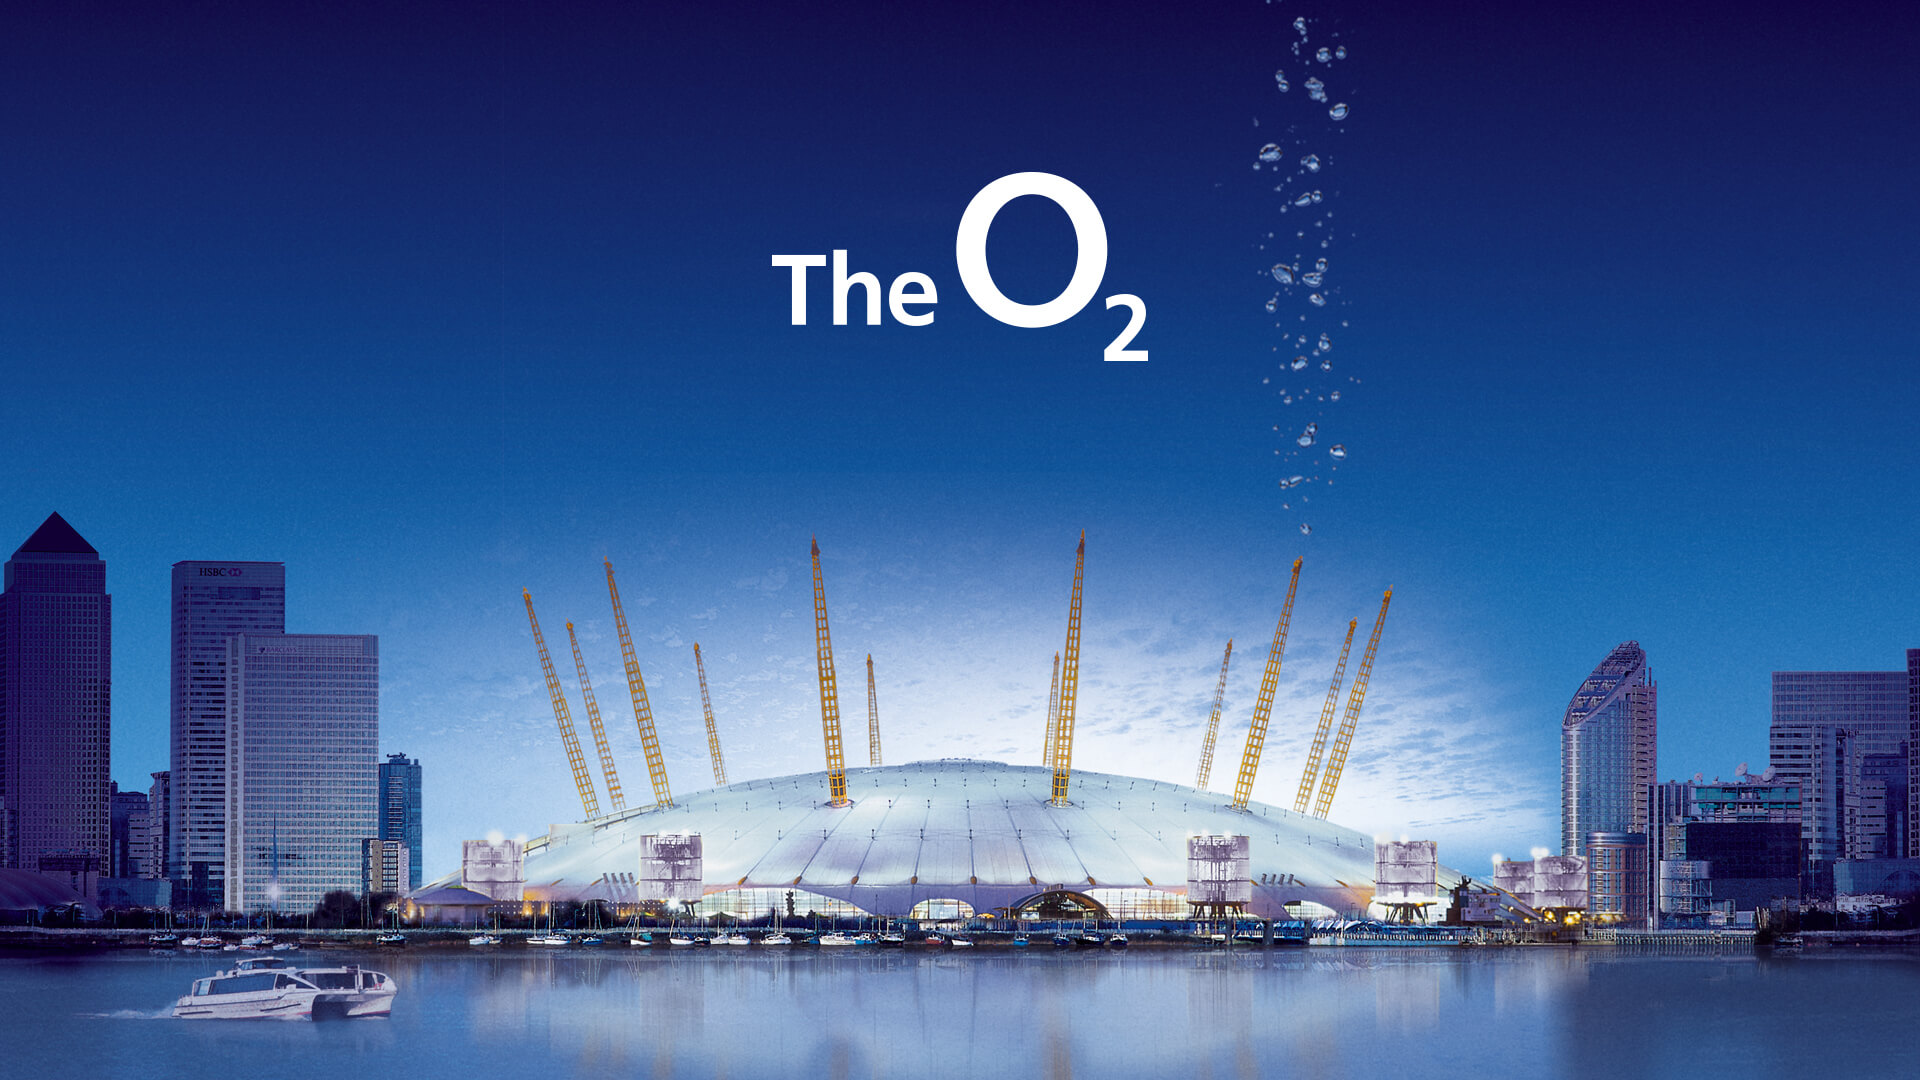 Brand identity for The O2